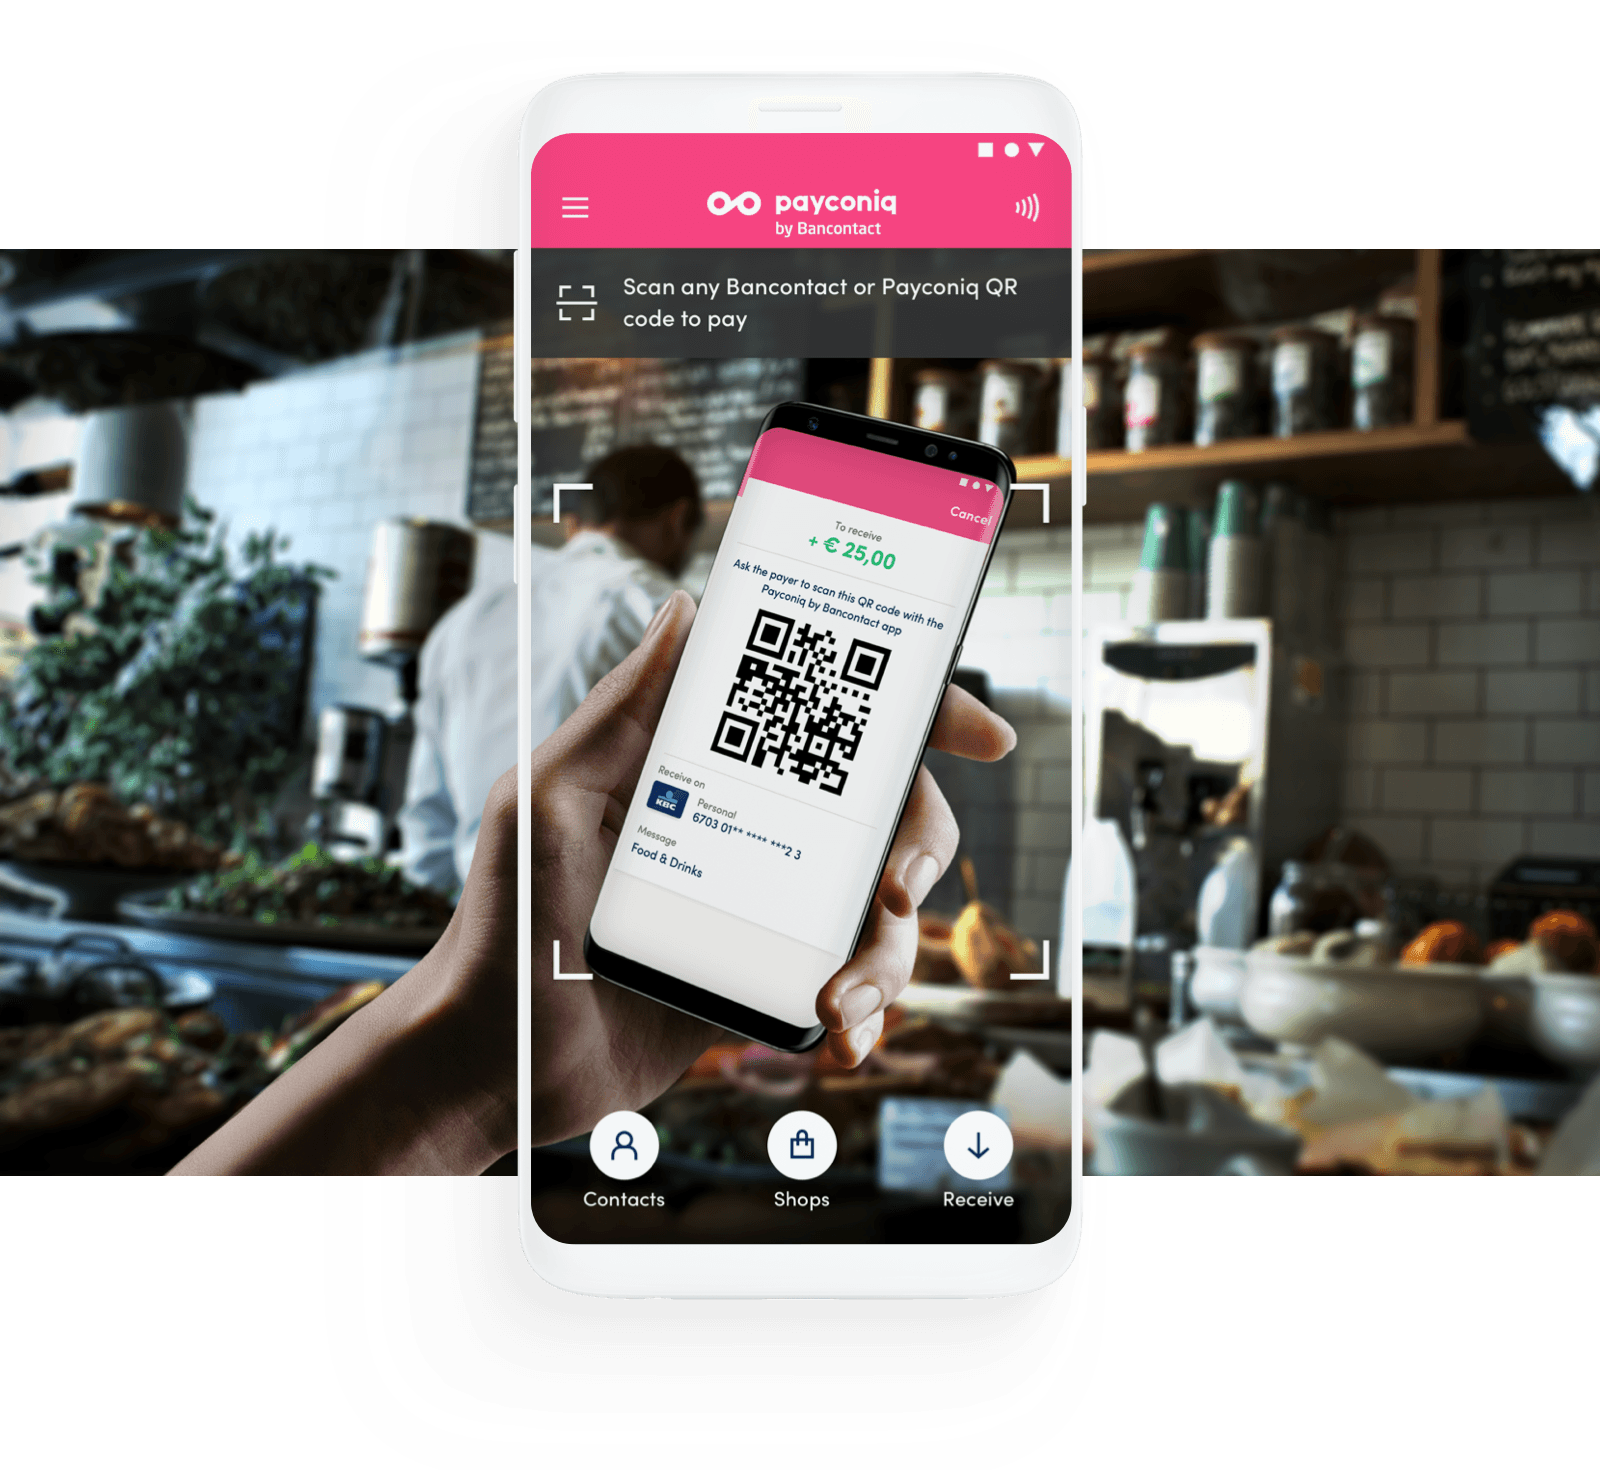 Mobile device scanning a QR code with the Payconiq by Bancontact app